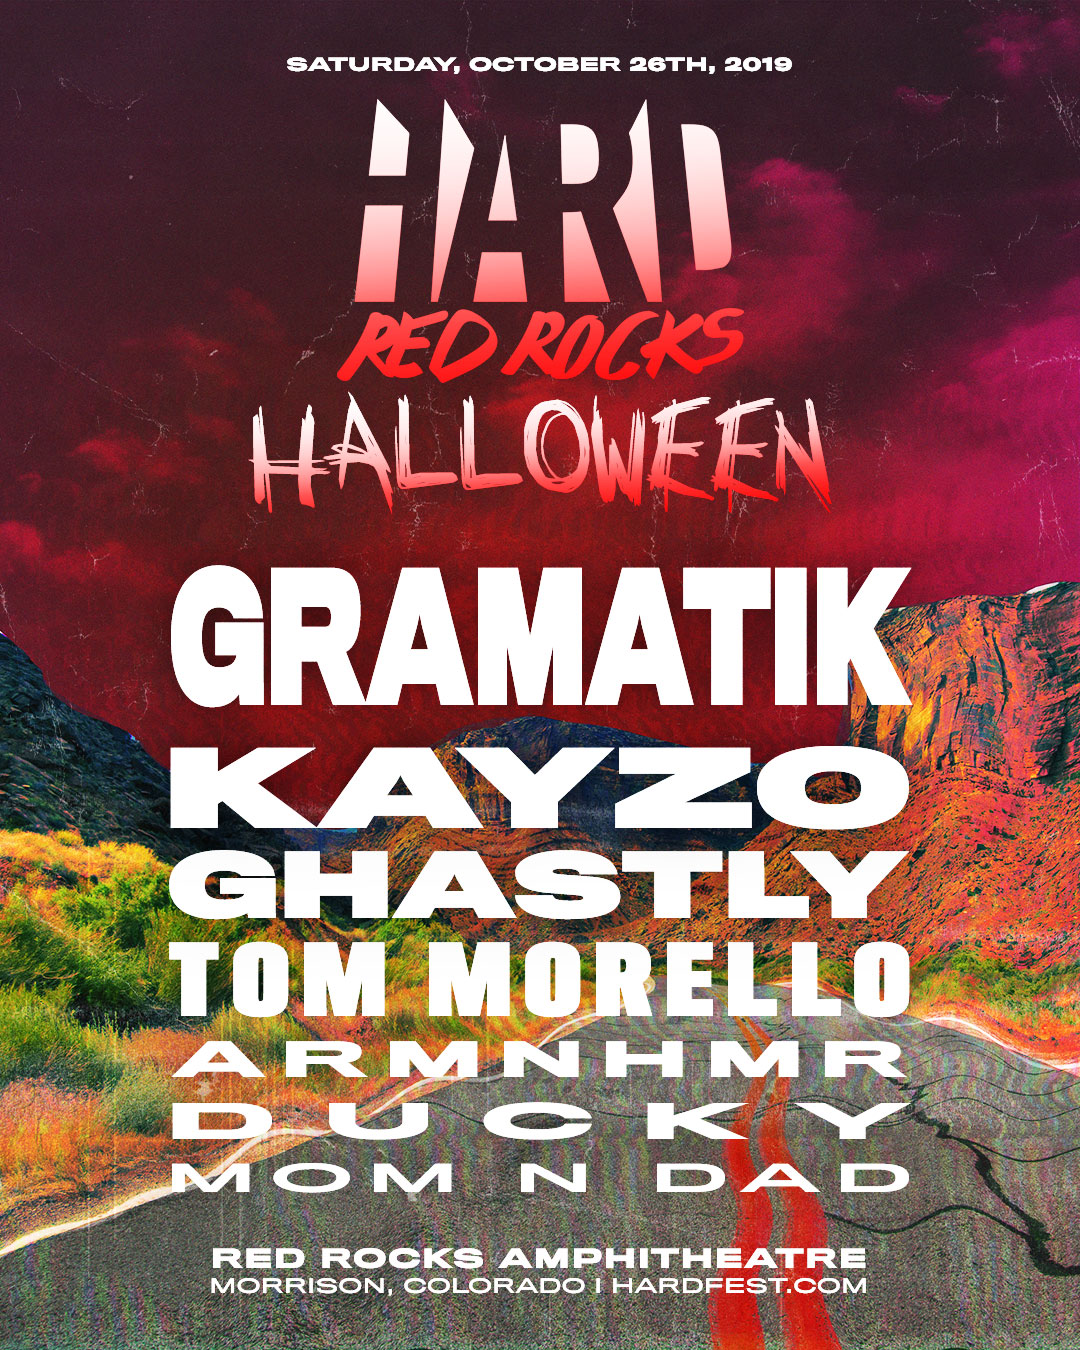 HARD Red Rocks artwork